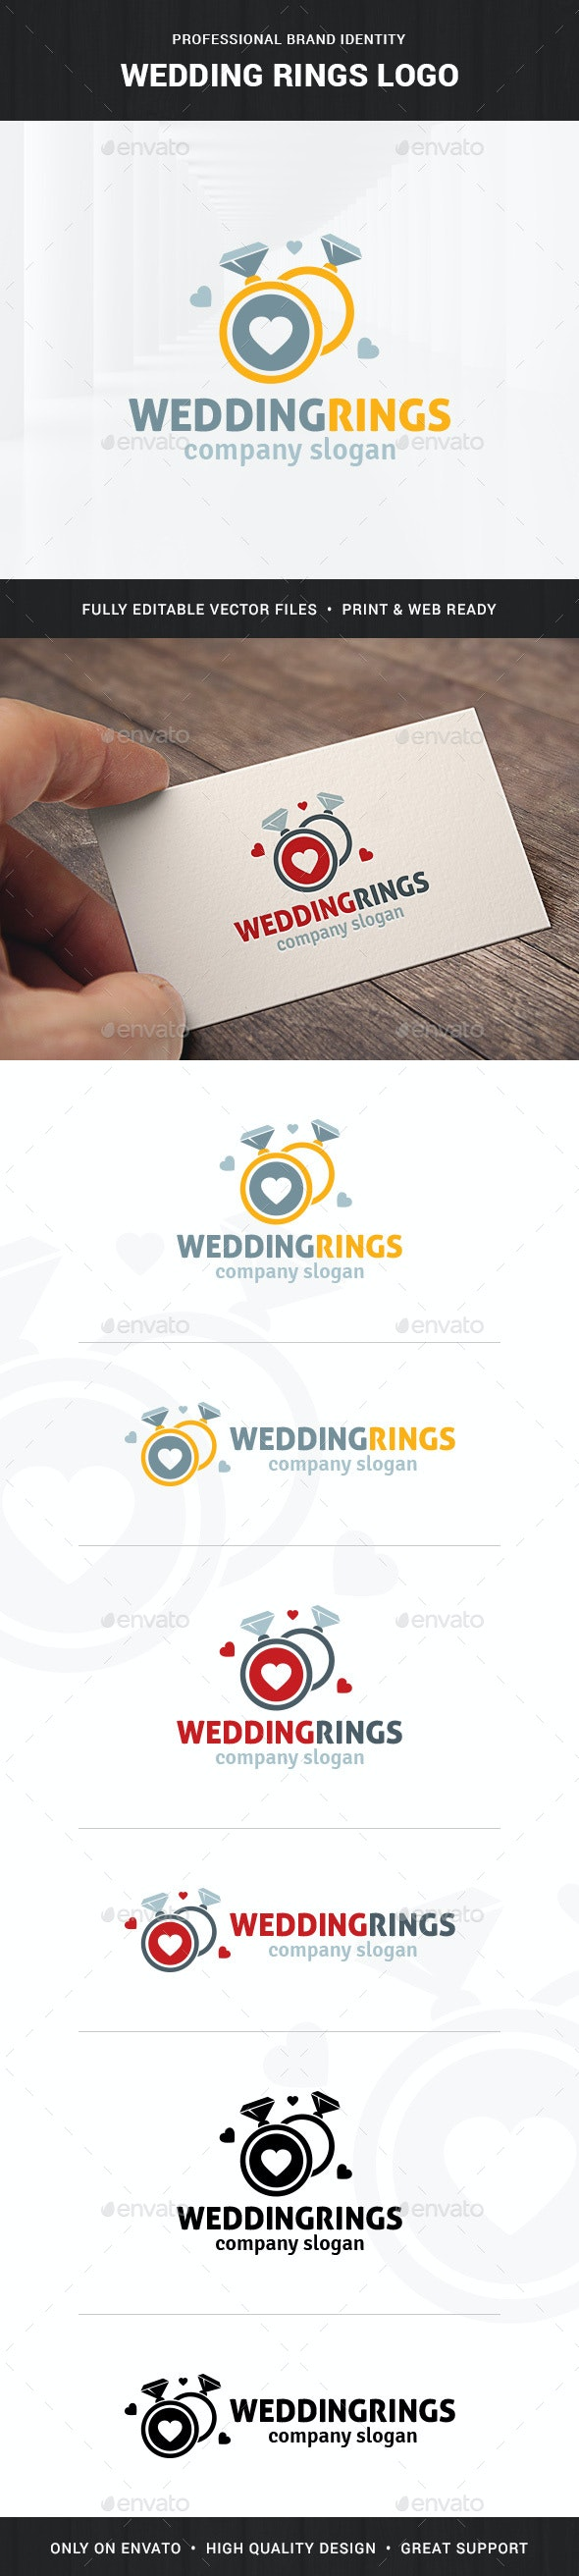 Wedding Rings Logo Template - Objects Logo Templates